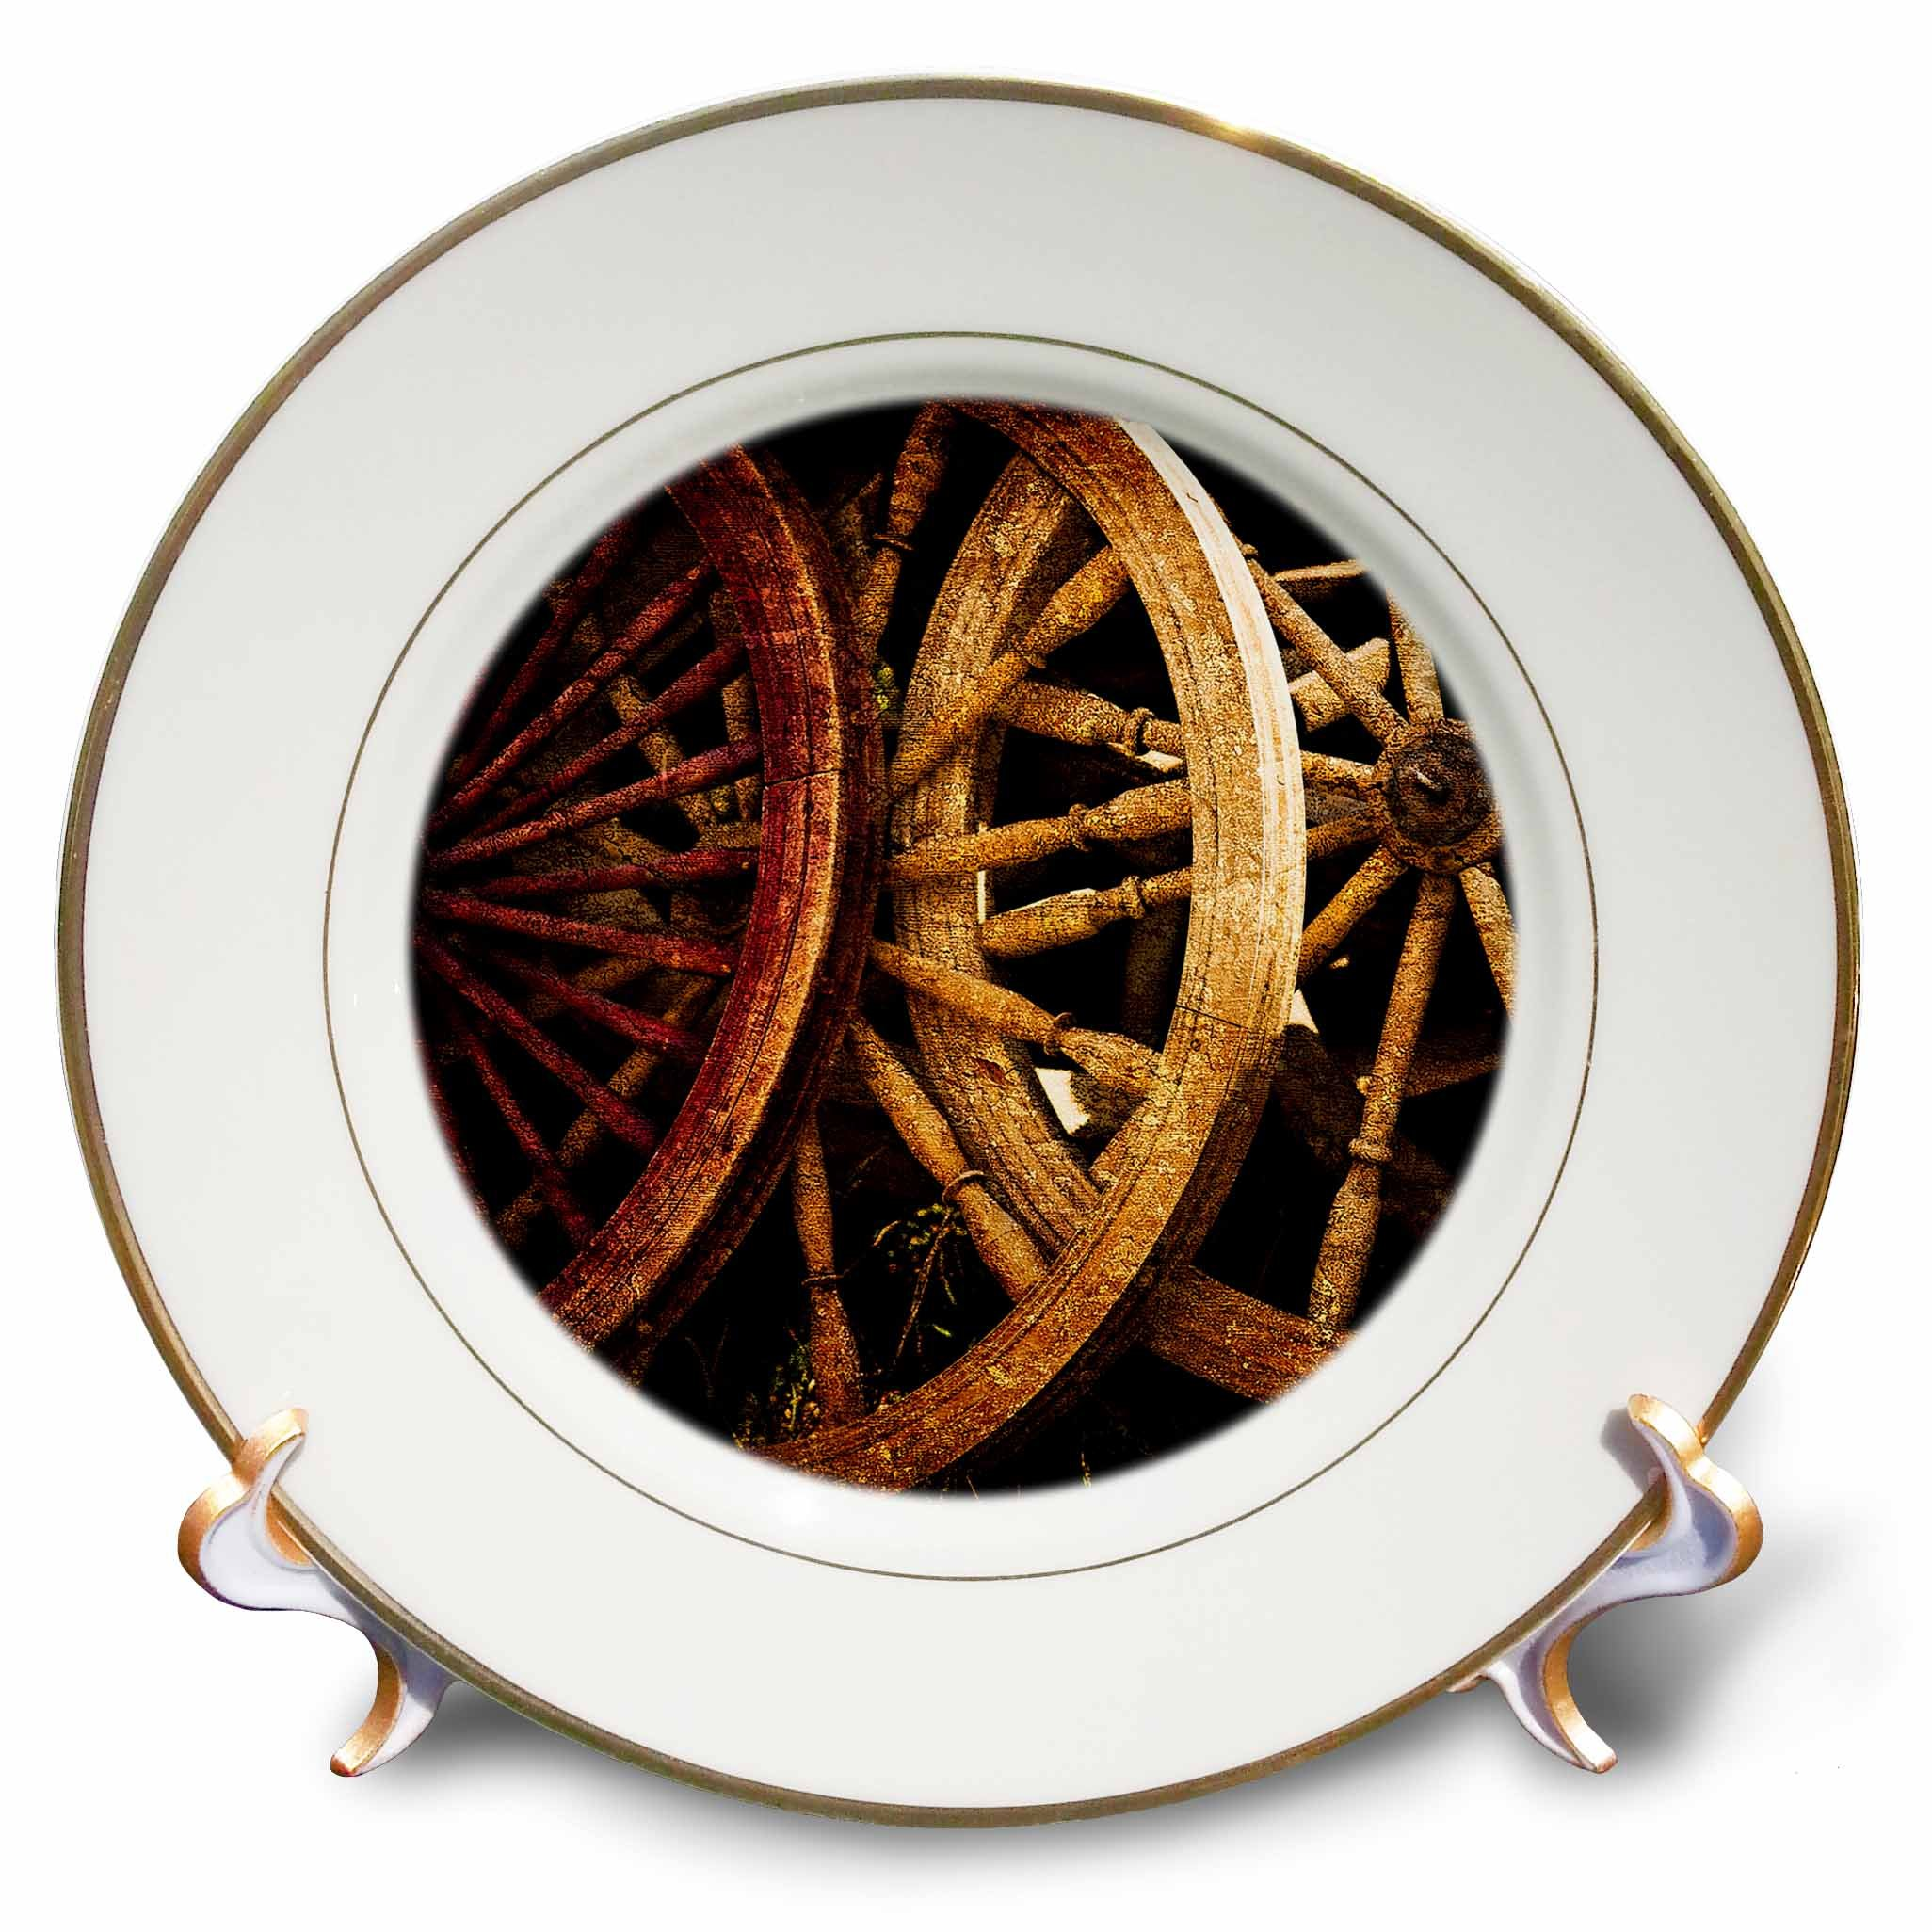 3dRose Alexis Photography - Objects - Golden age technologies - spinning wheels spare parts. Stylized photo - 8 inch Porcelain Plate (cp_270867_1)